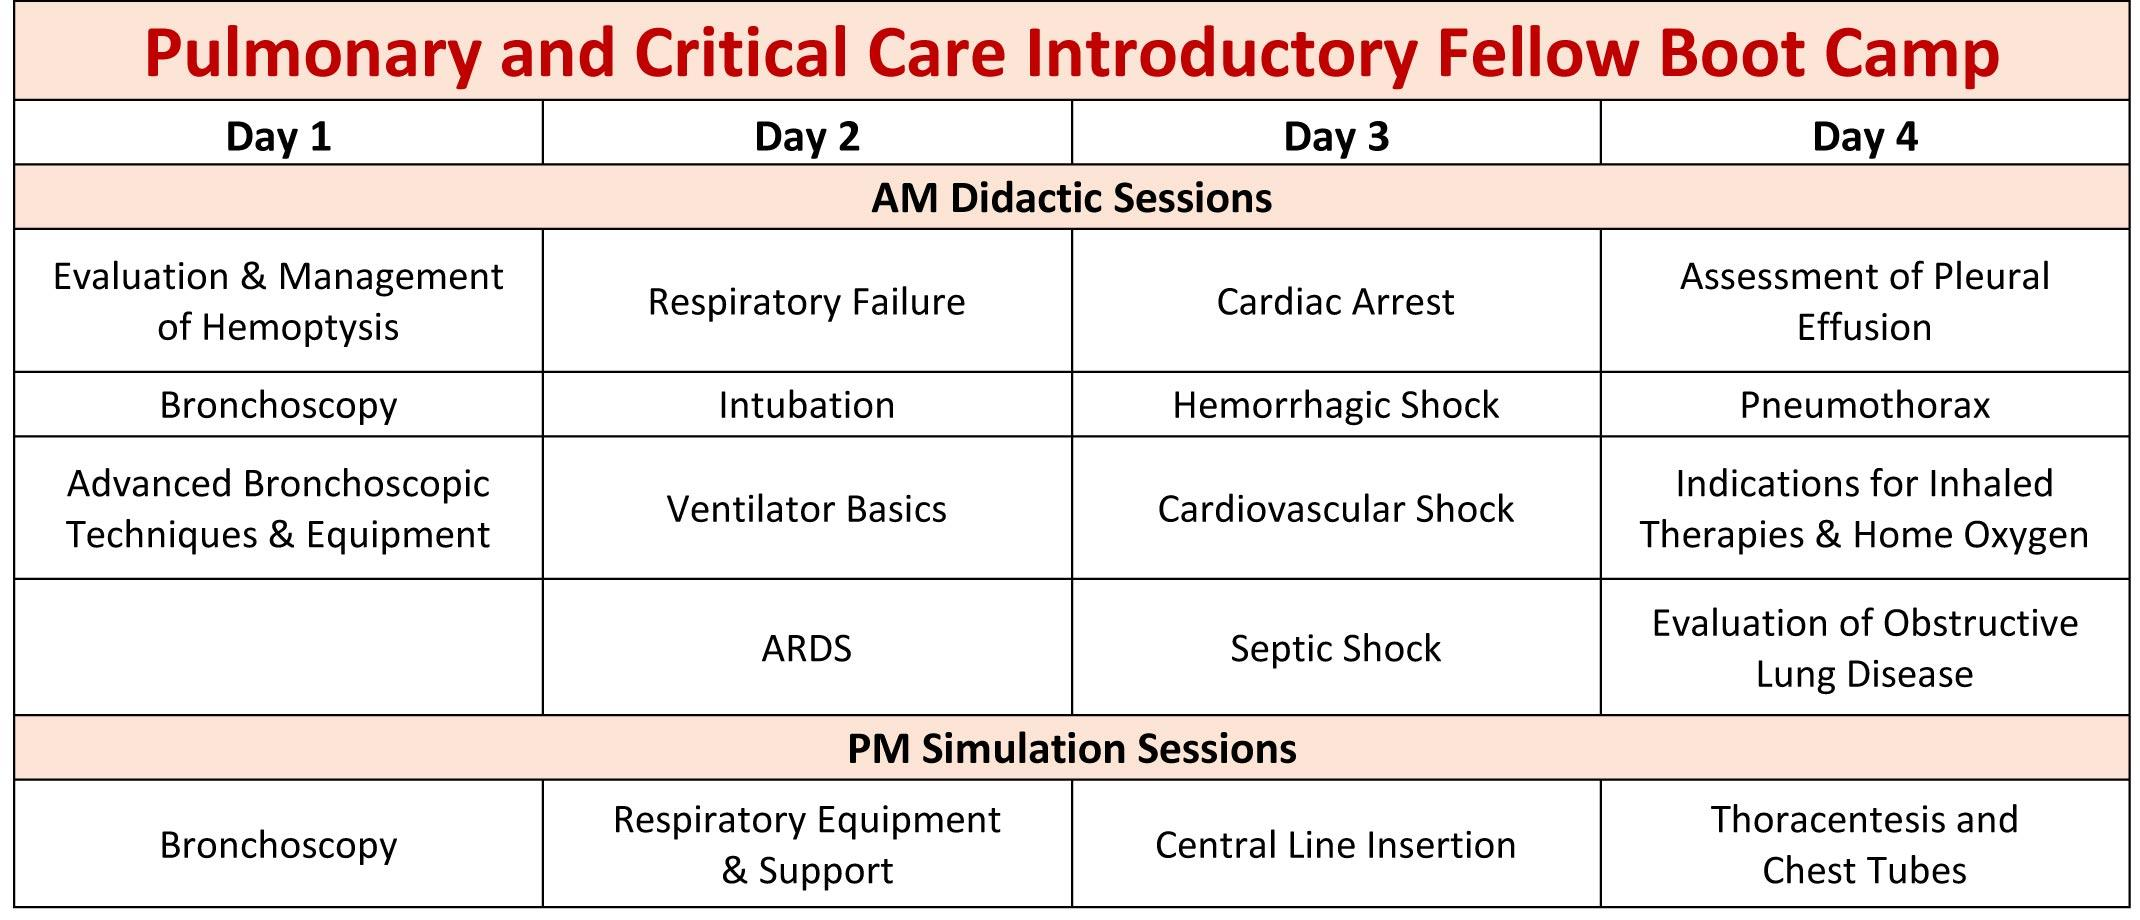 Pulmonary and Critical Care Introductory Fellow Boot Camp Schedule